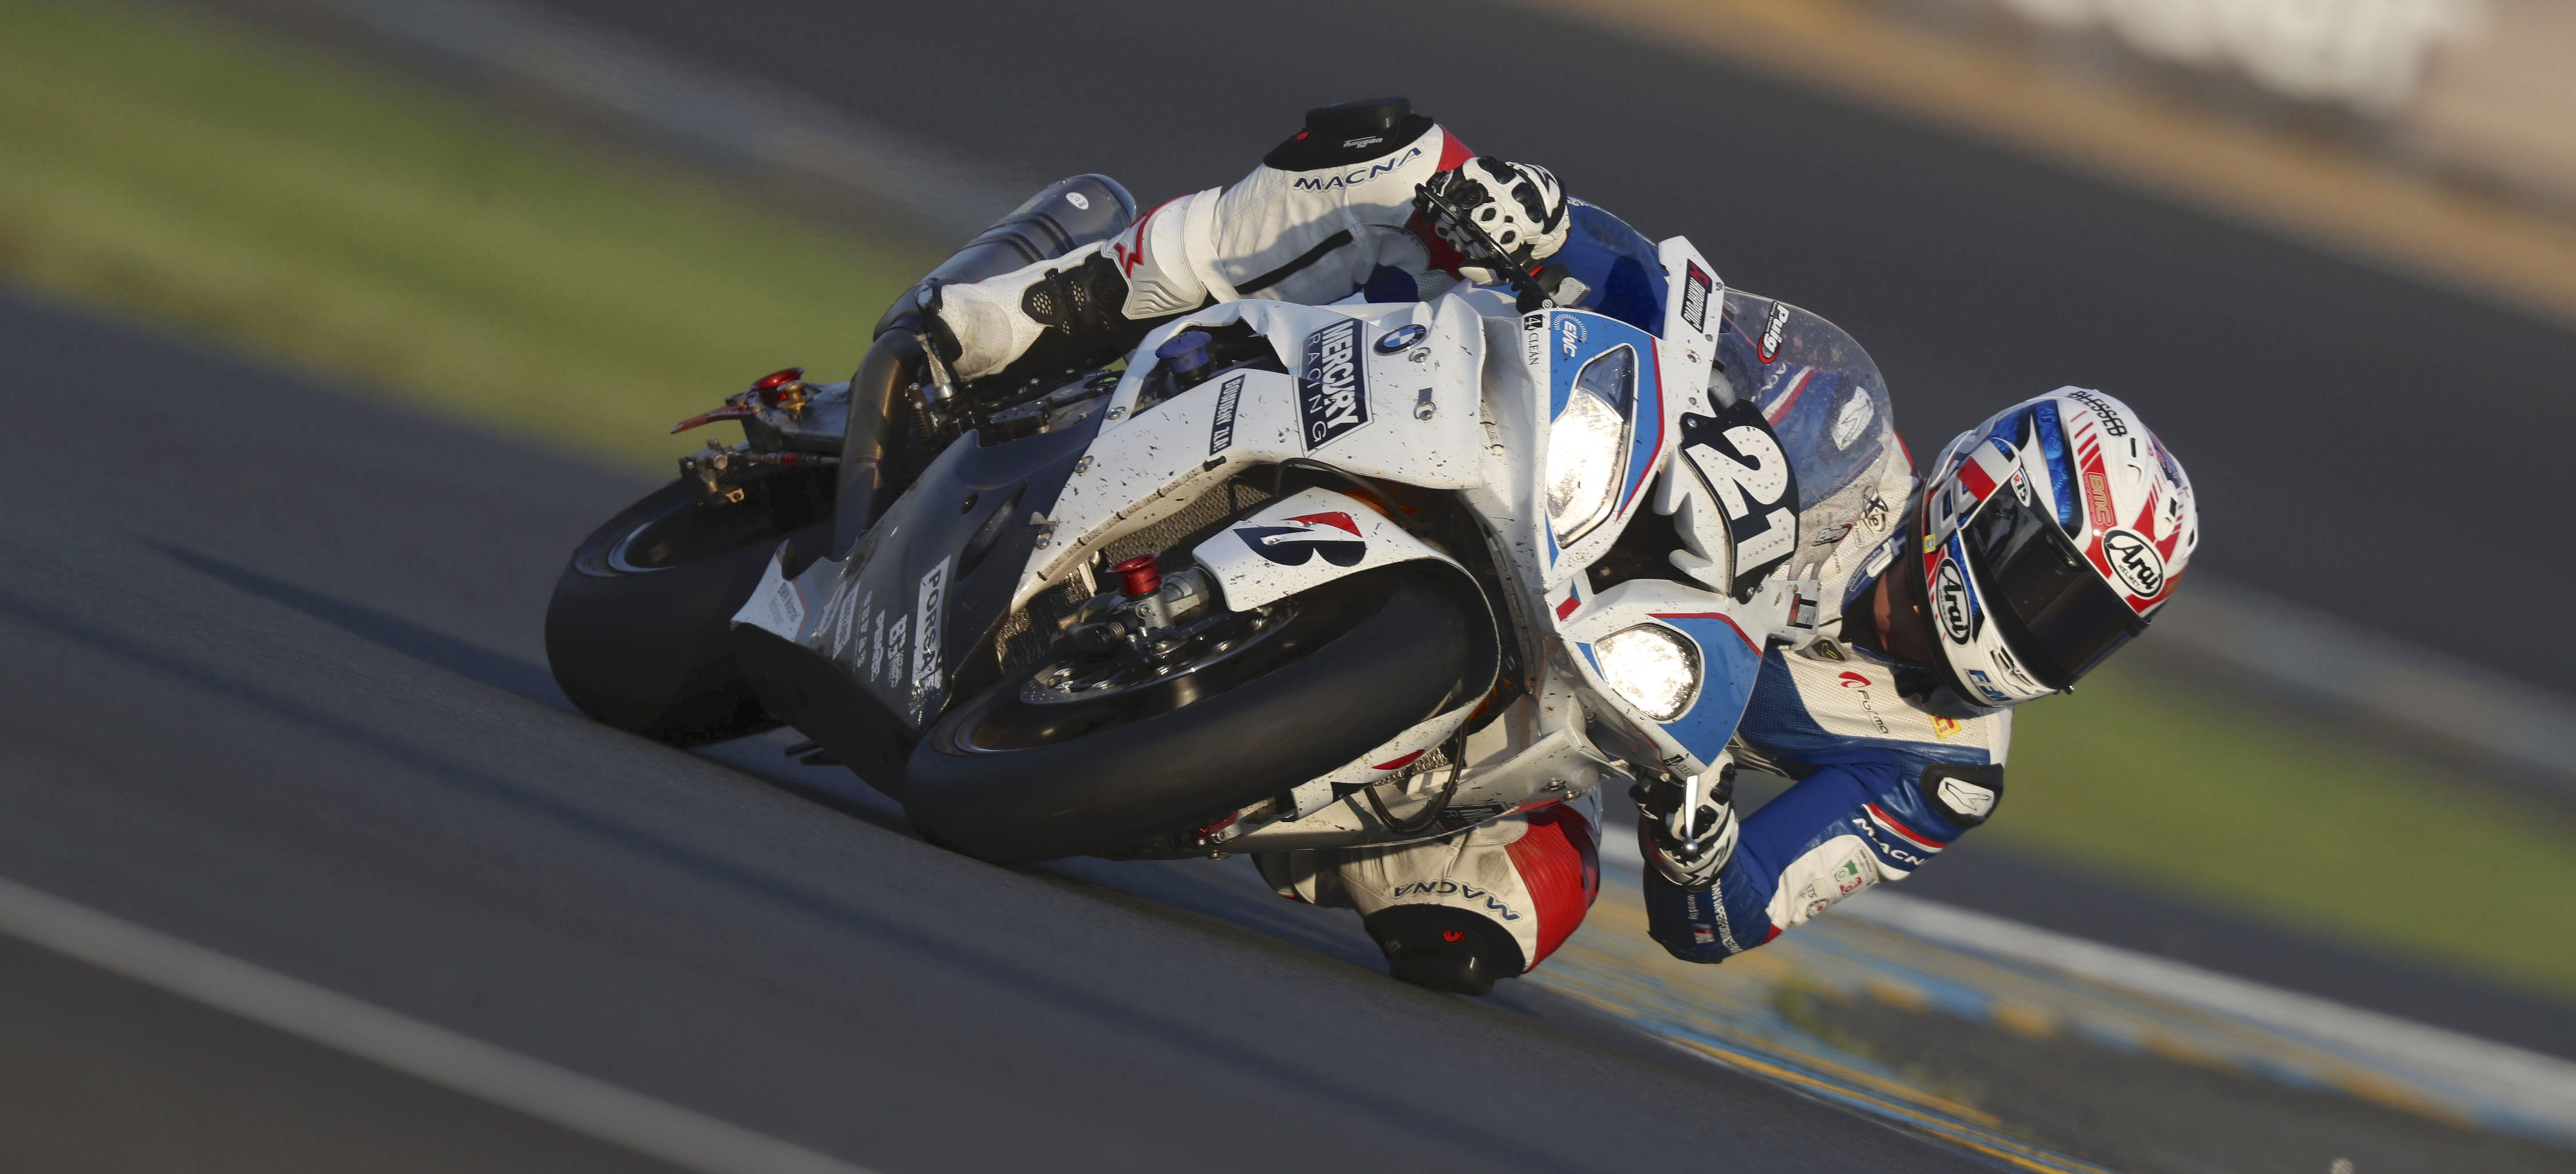 Mercury Racing is top privateer team of the 2017-2018 FIM EWC